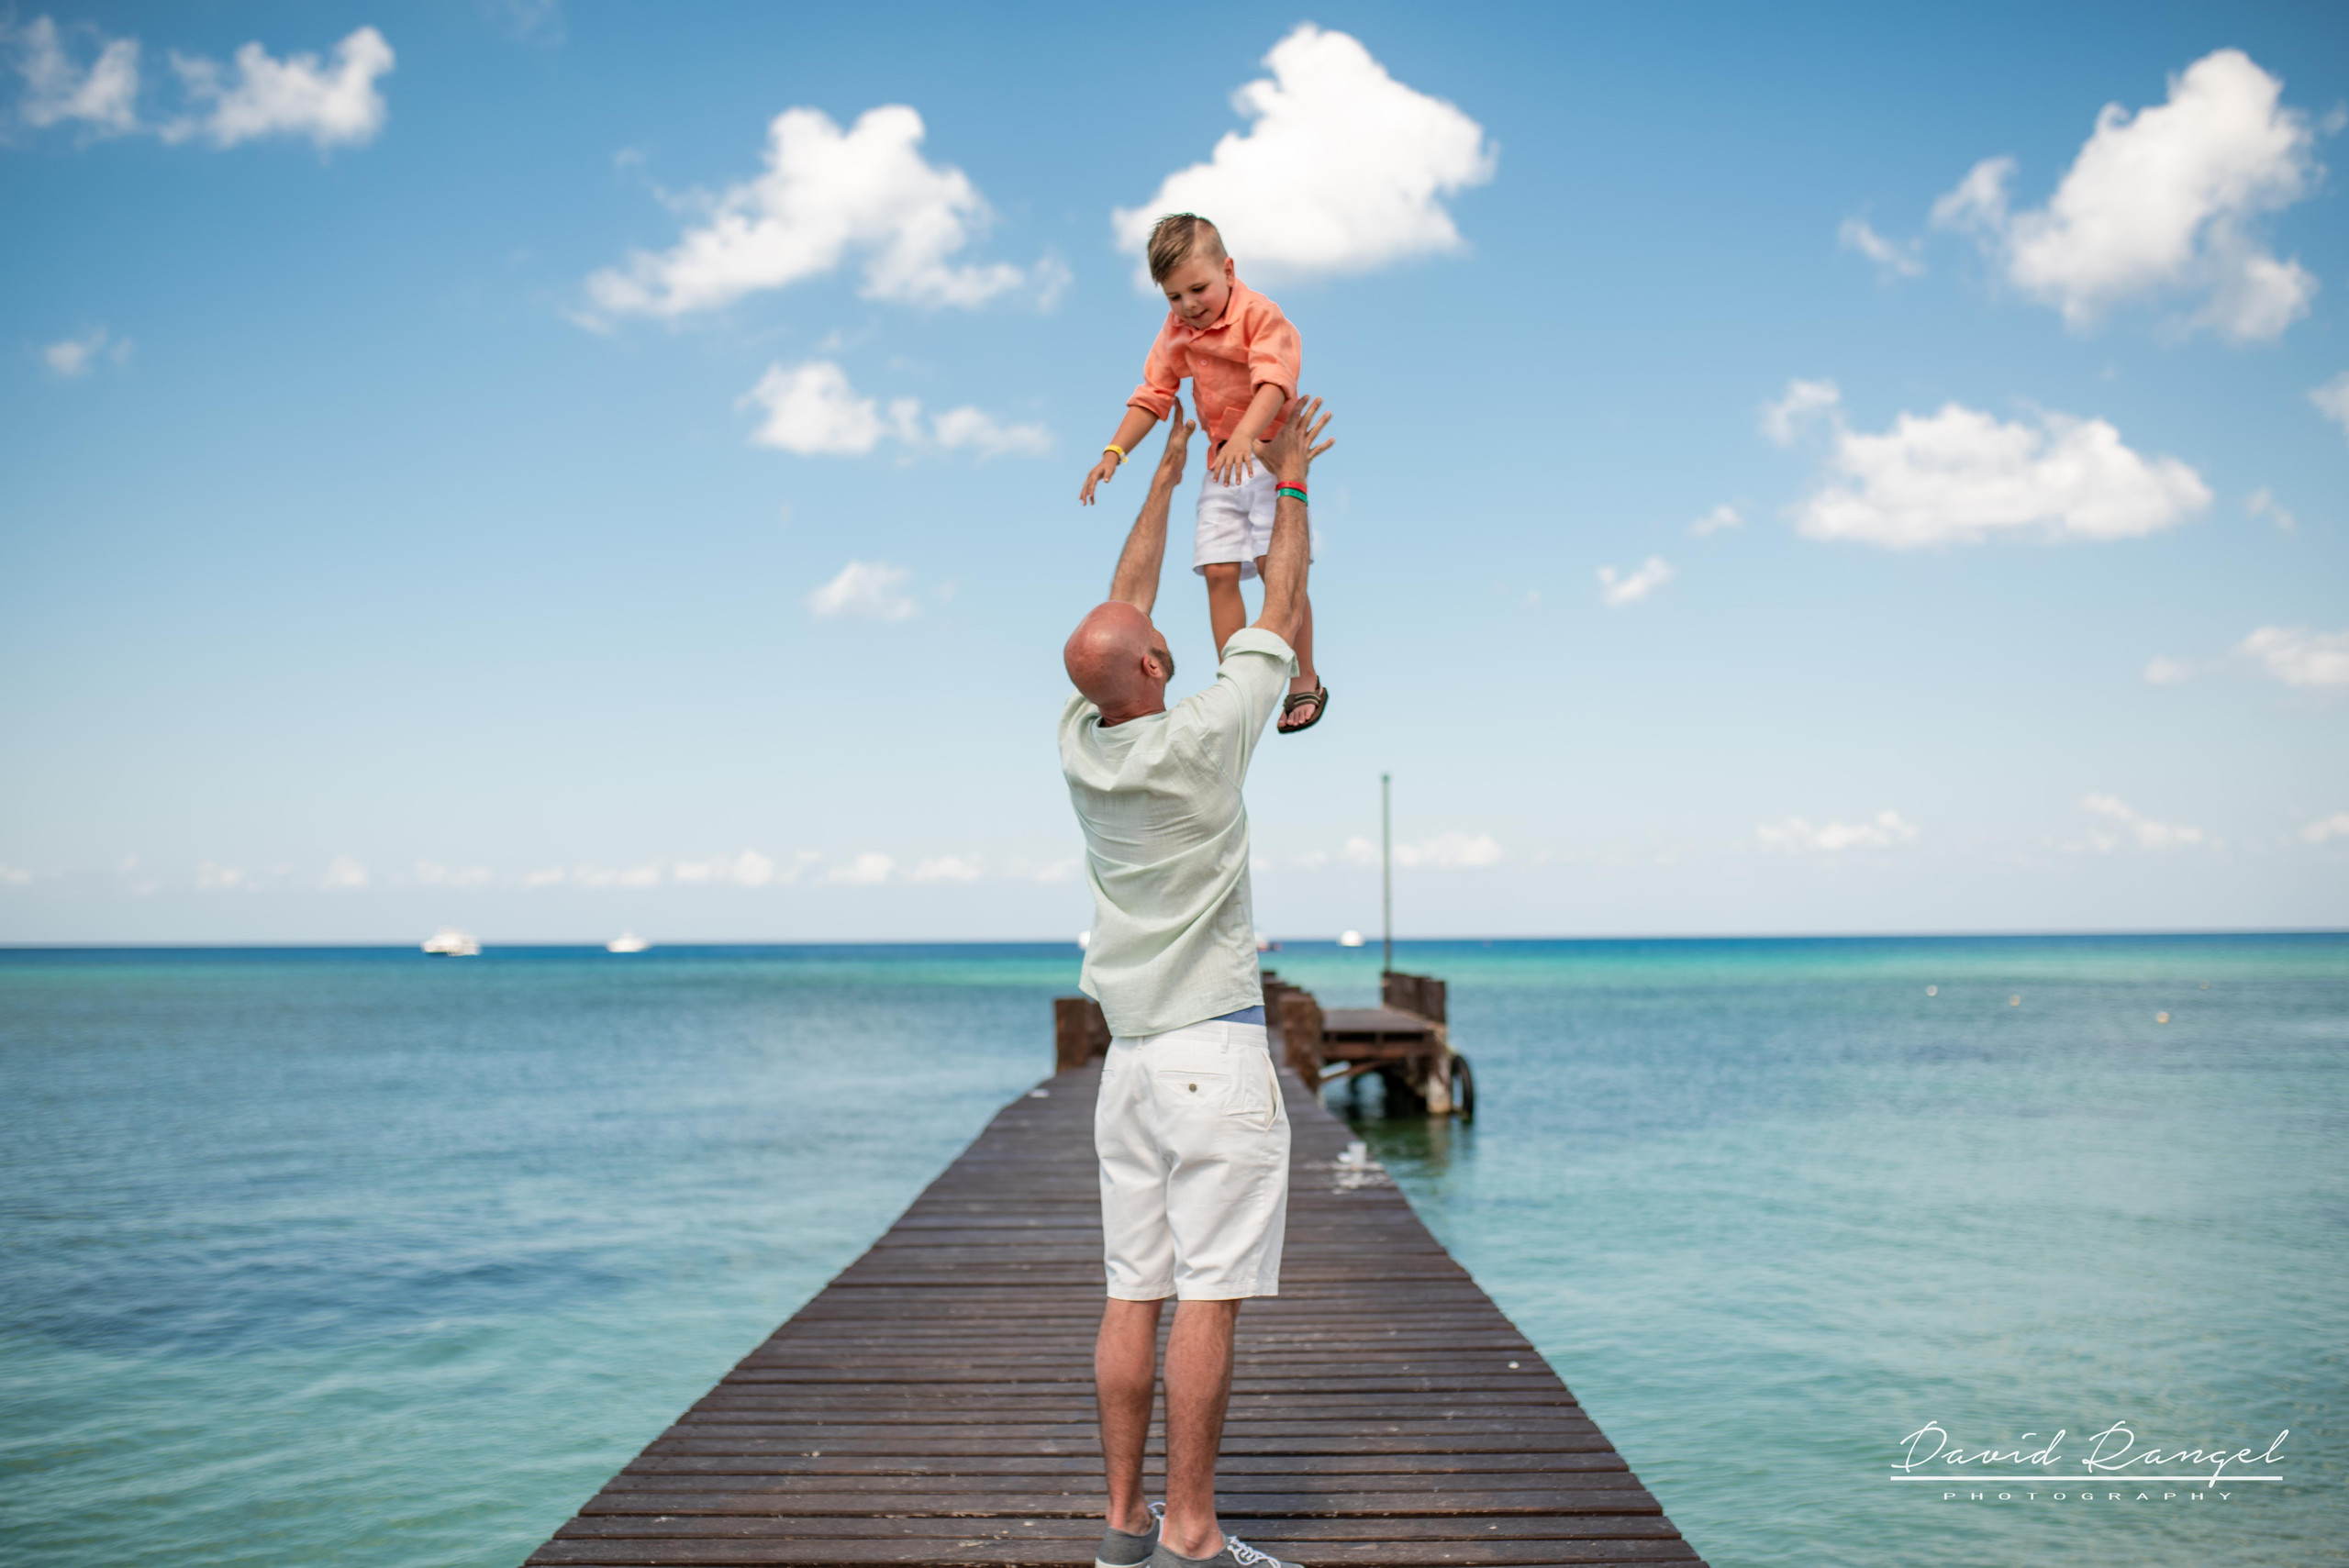 session+beach+cozumel+island+photo+destination+photographer+father+son+game+play+water+pier+paradise